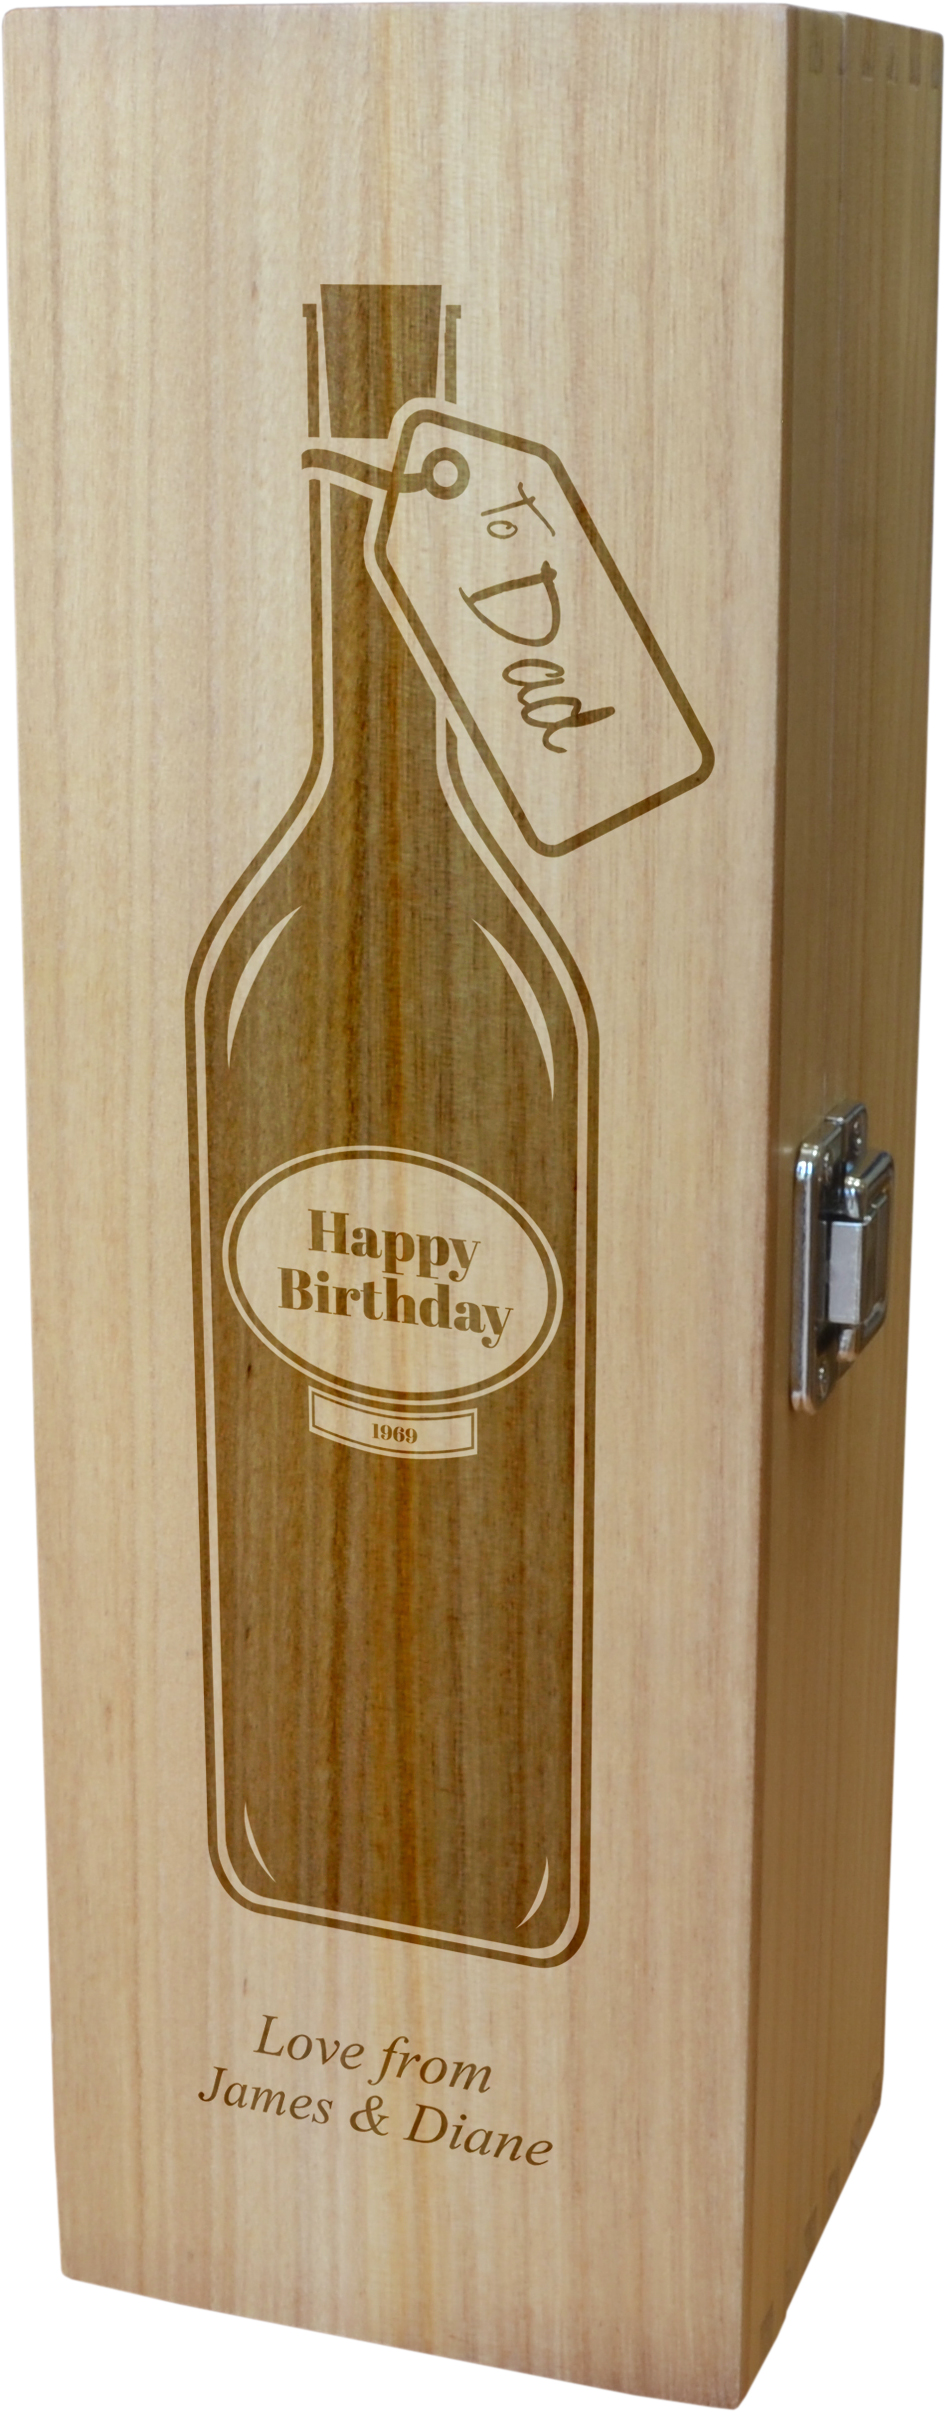 "Personalised Wooden Wine Box - Happy Birthday Dad Full Wine Bottle Design 35cm (13.75"")"